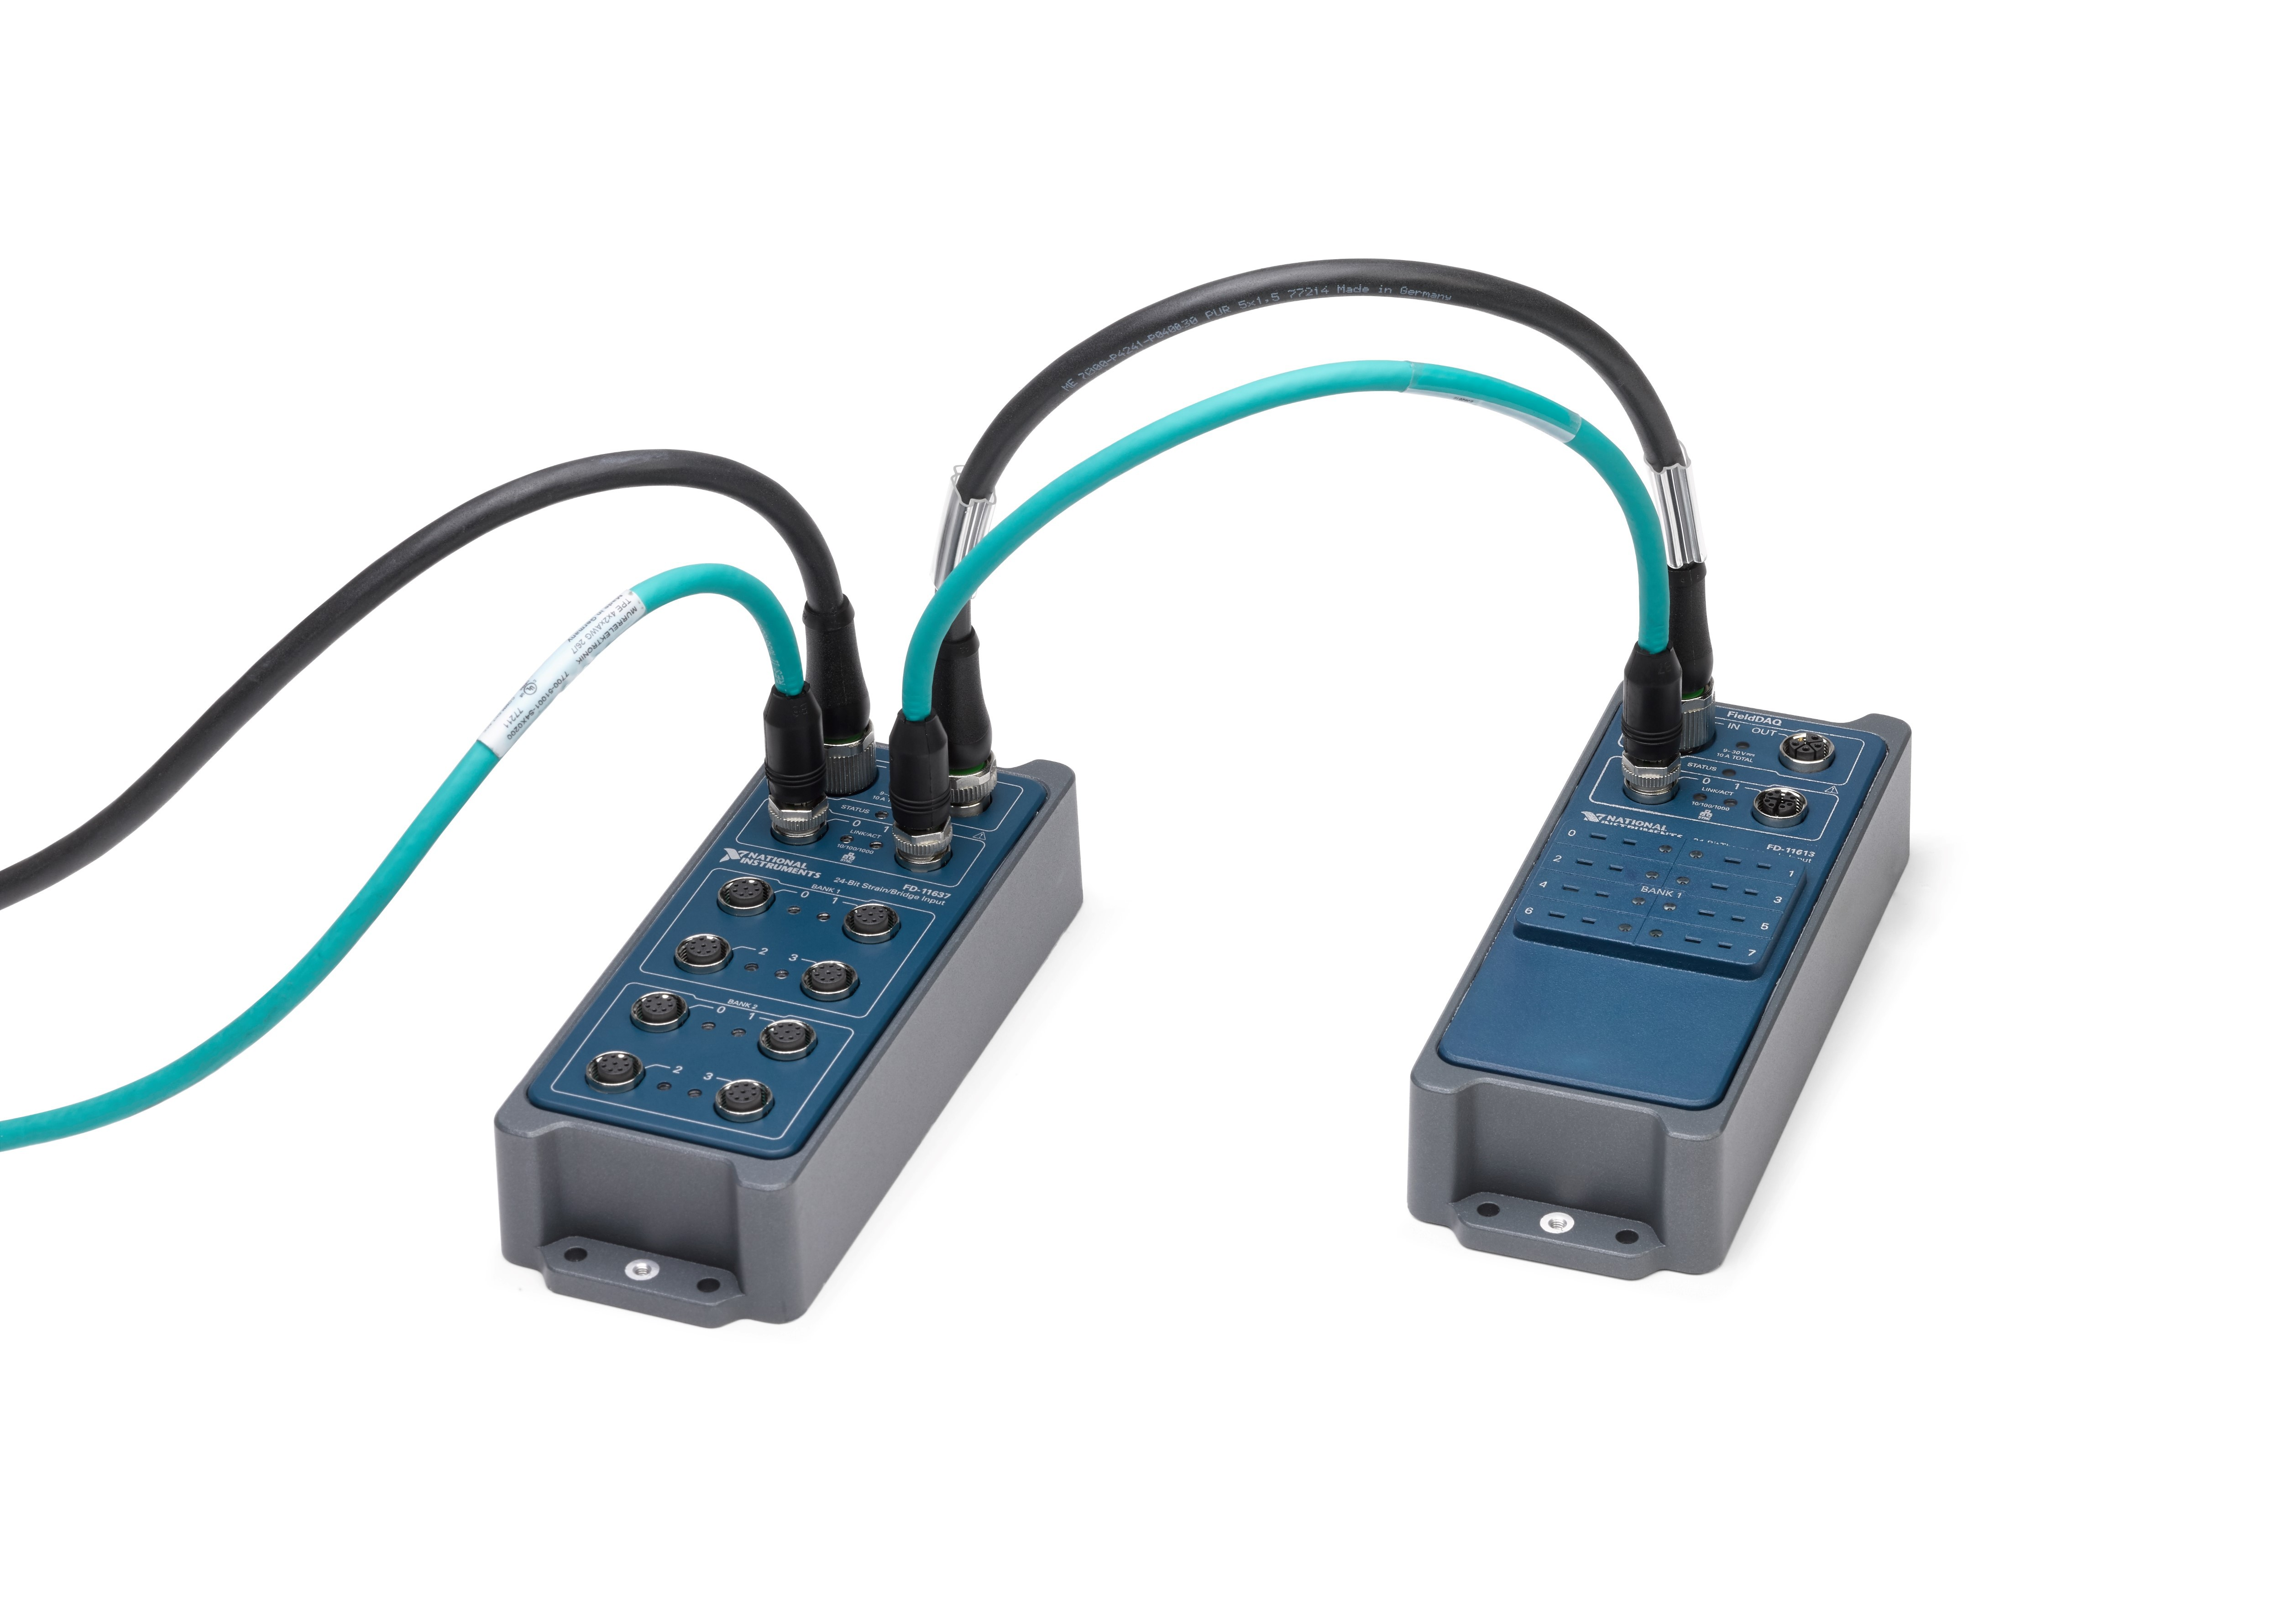 FieldDAQ is designed for the harsh environments of any application